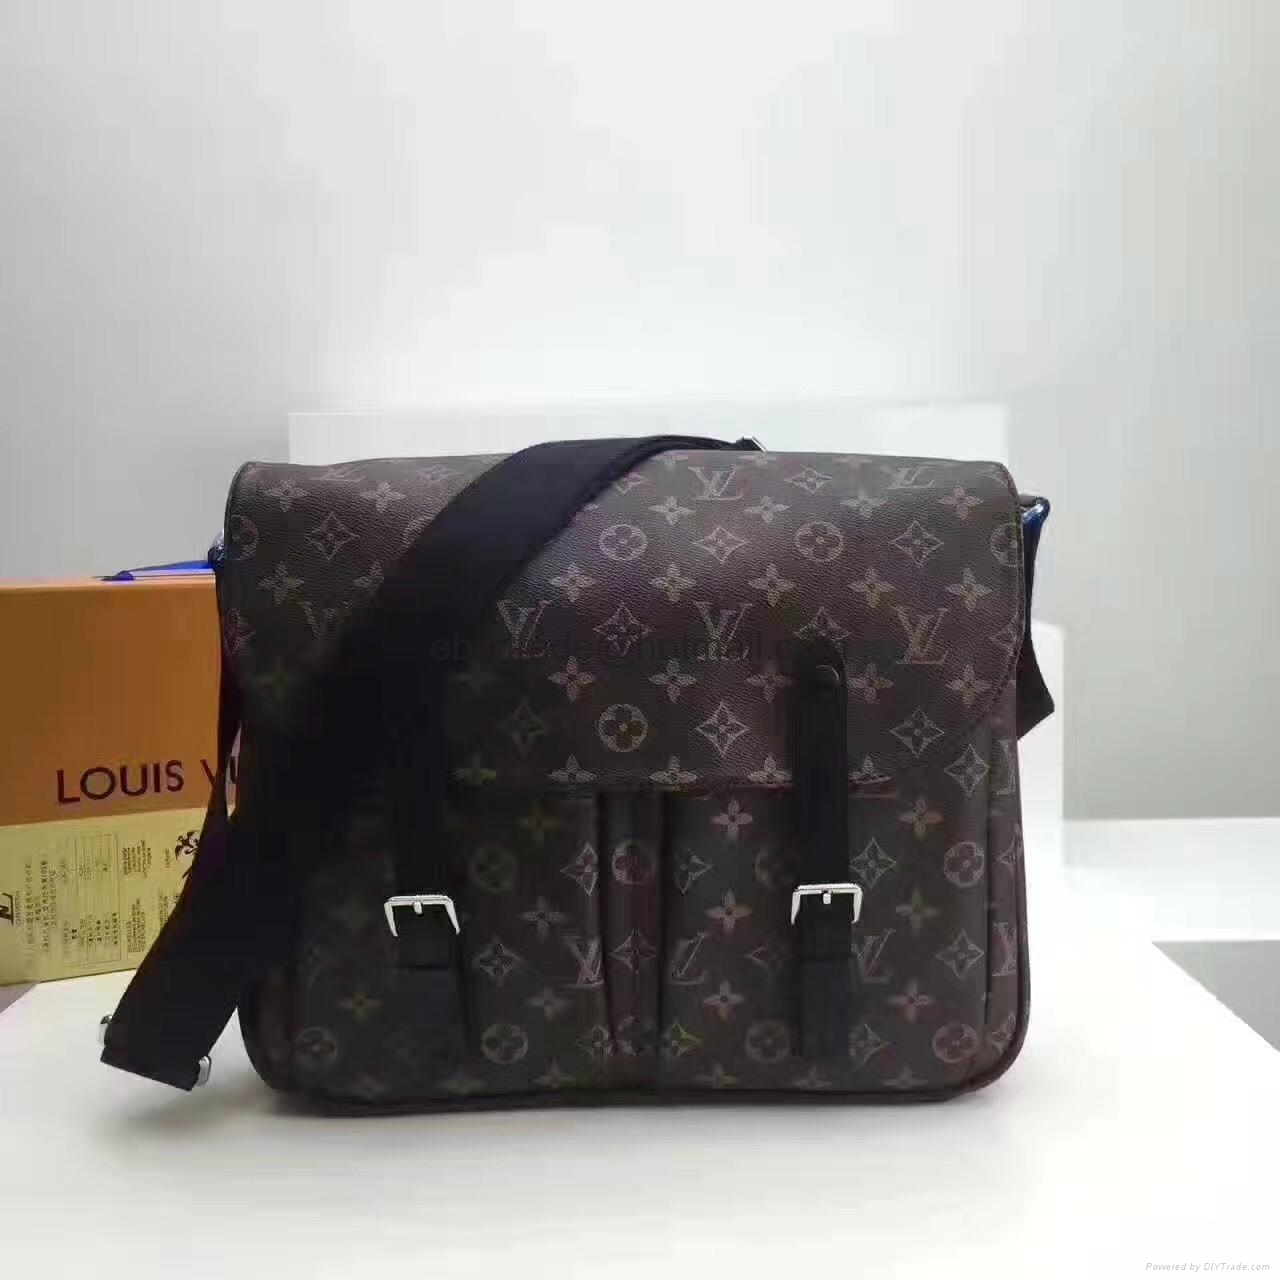 LV bags for men